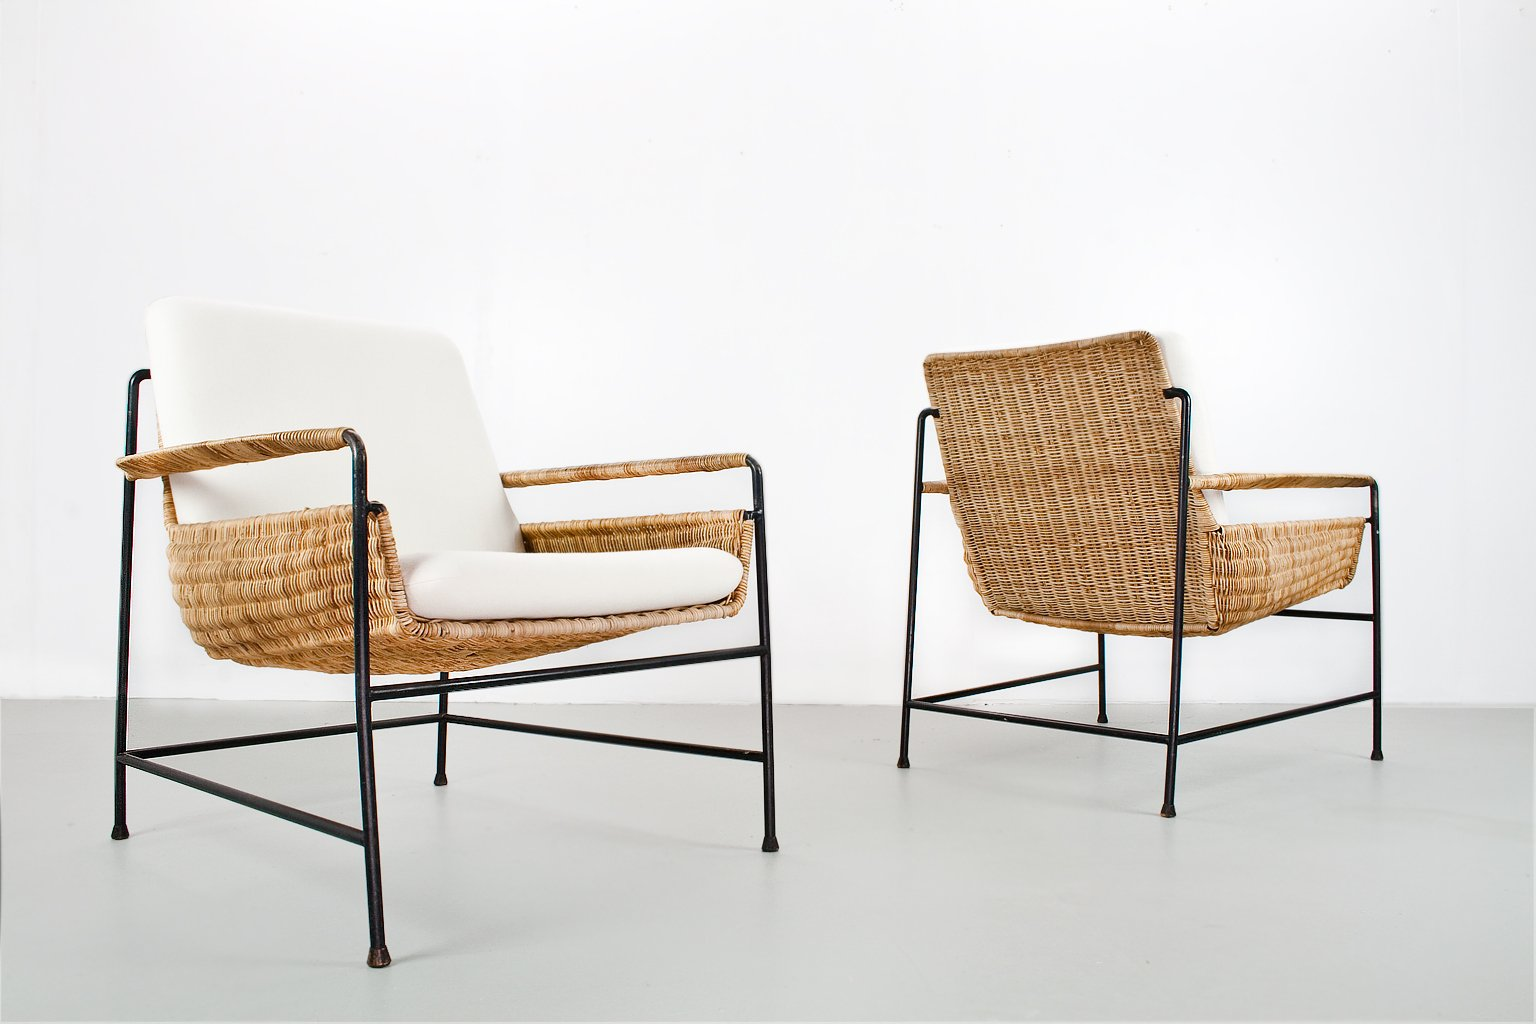 rattan lounge chairs by herta maria witzemann for wilde. Black Bedroom Furniture Sets. Home Design Ideas